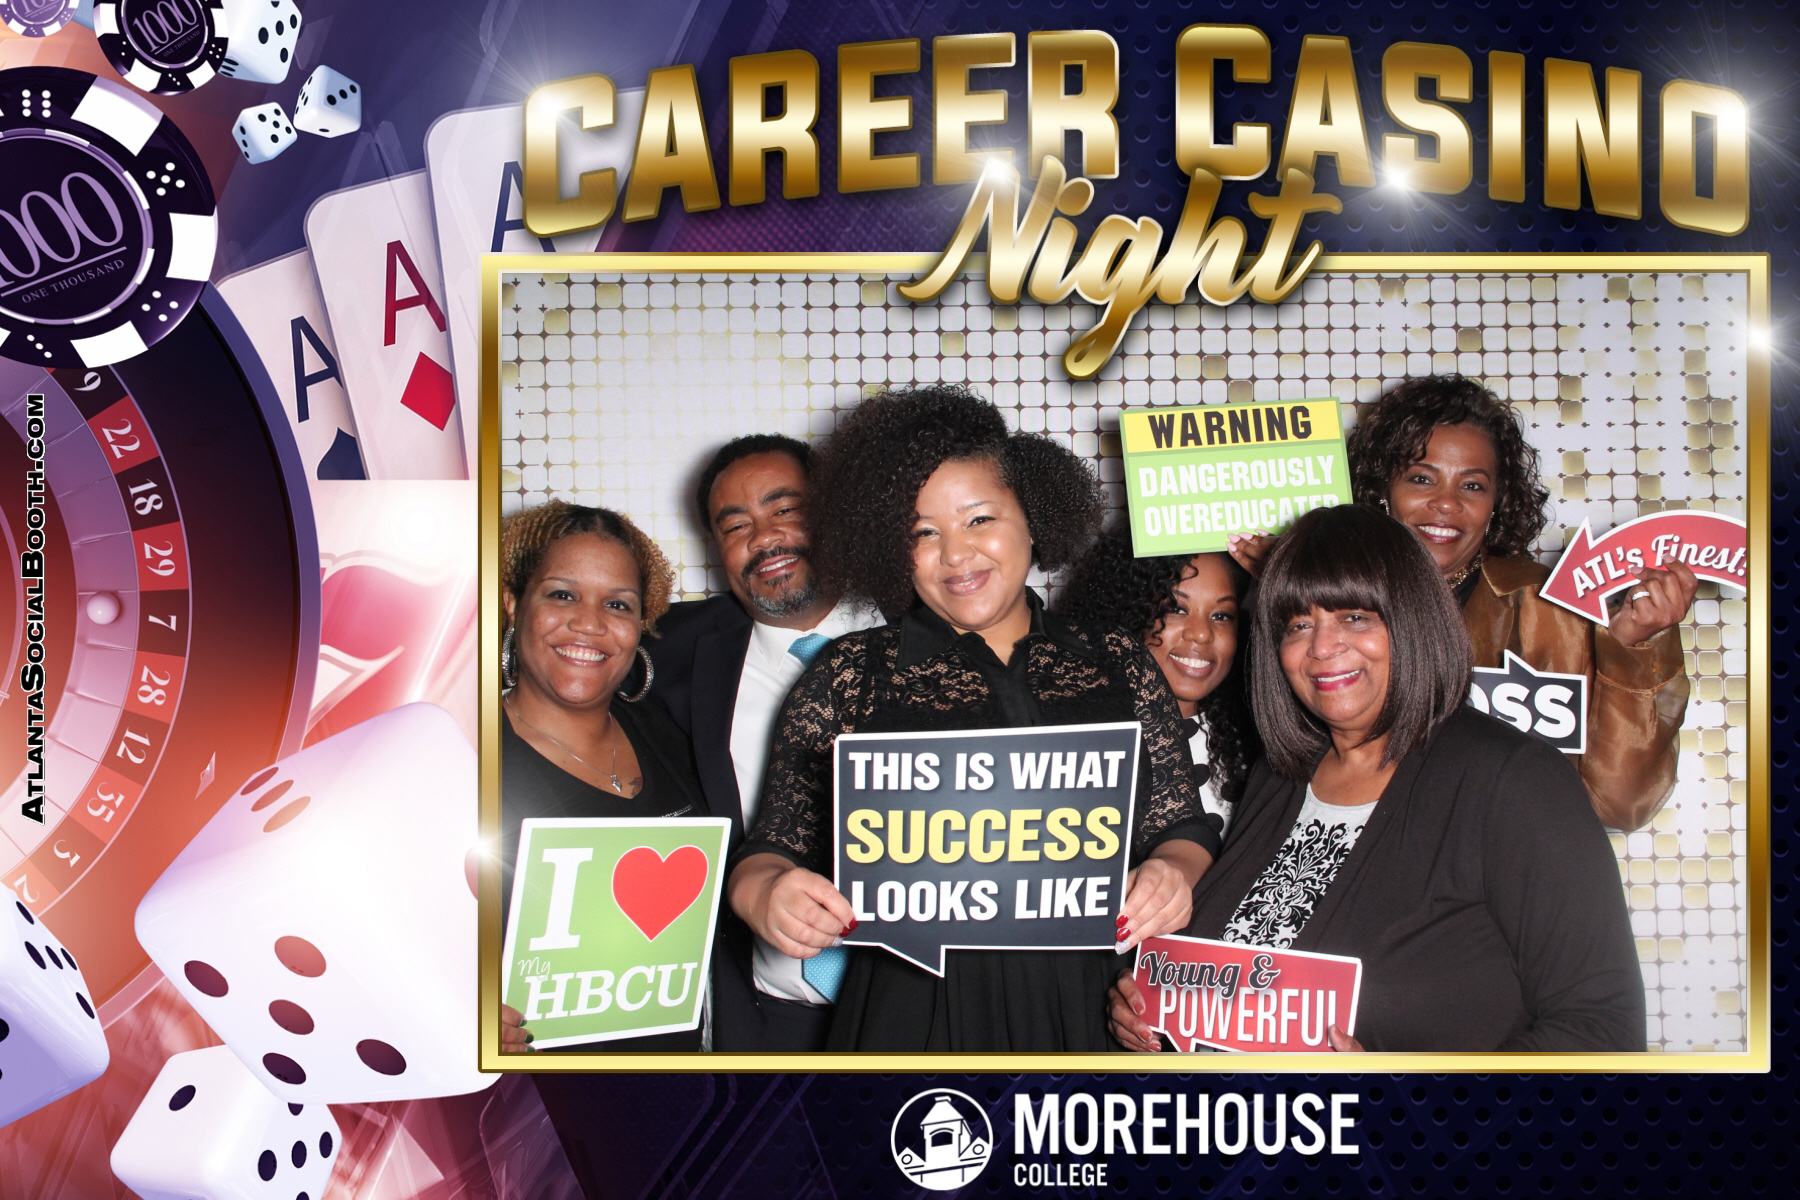 Morehouse College Career Casino Nigh